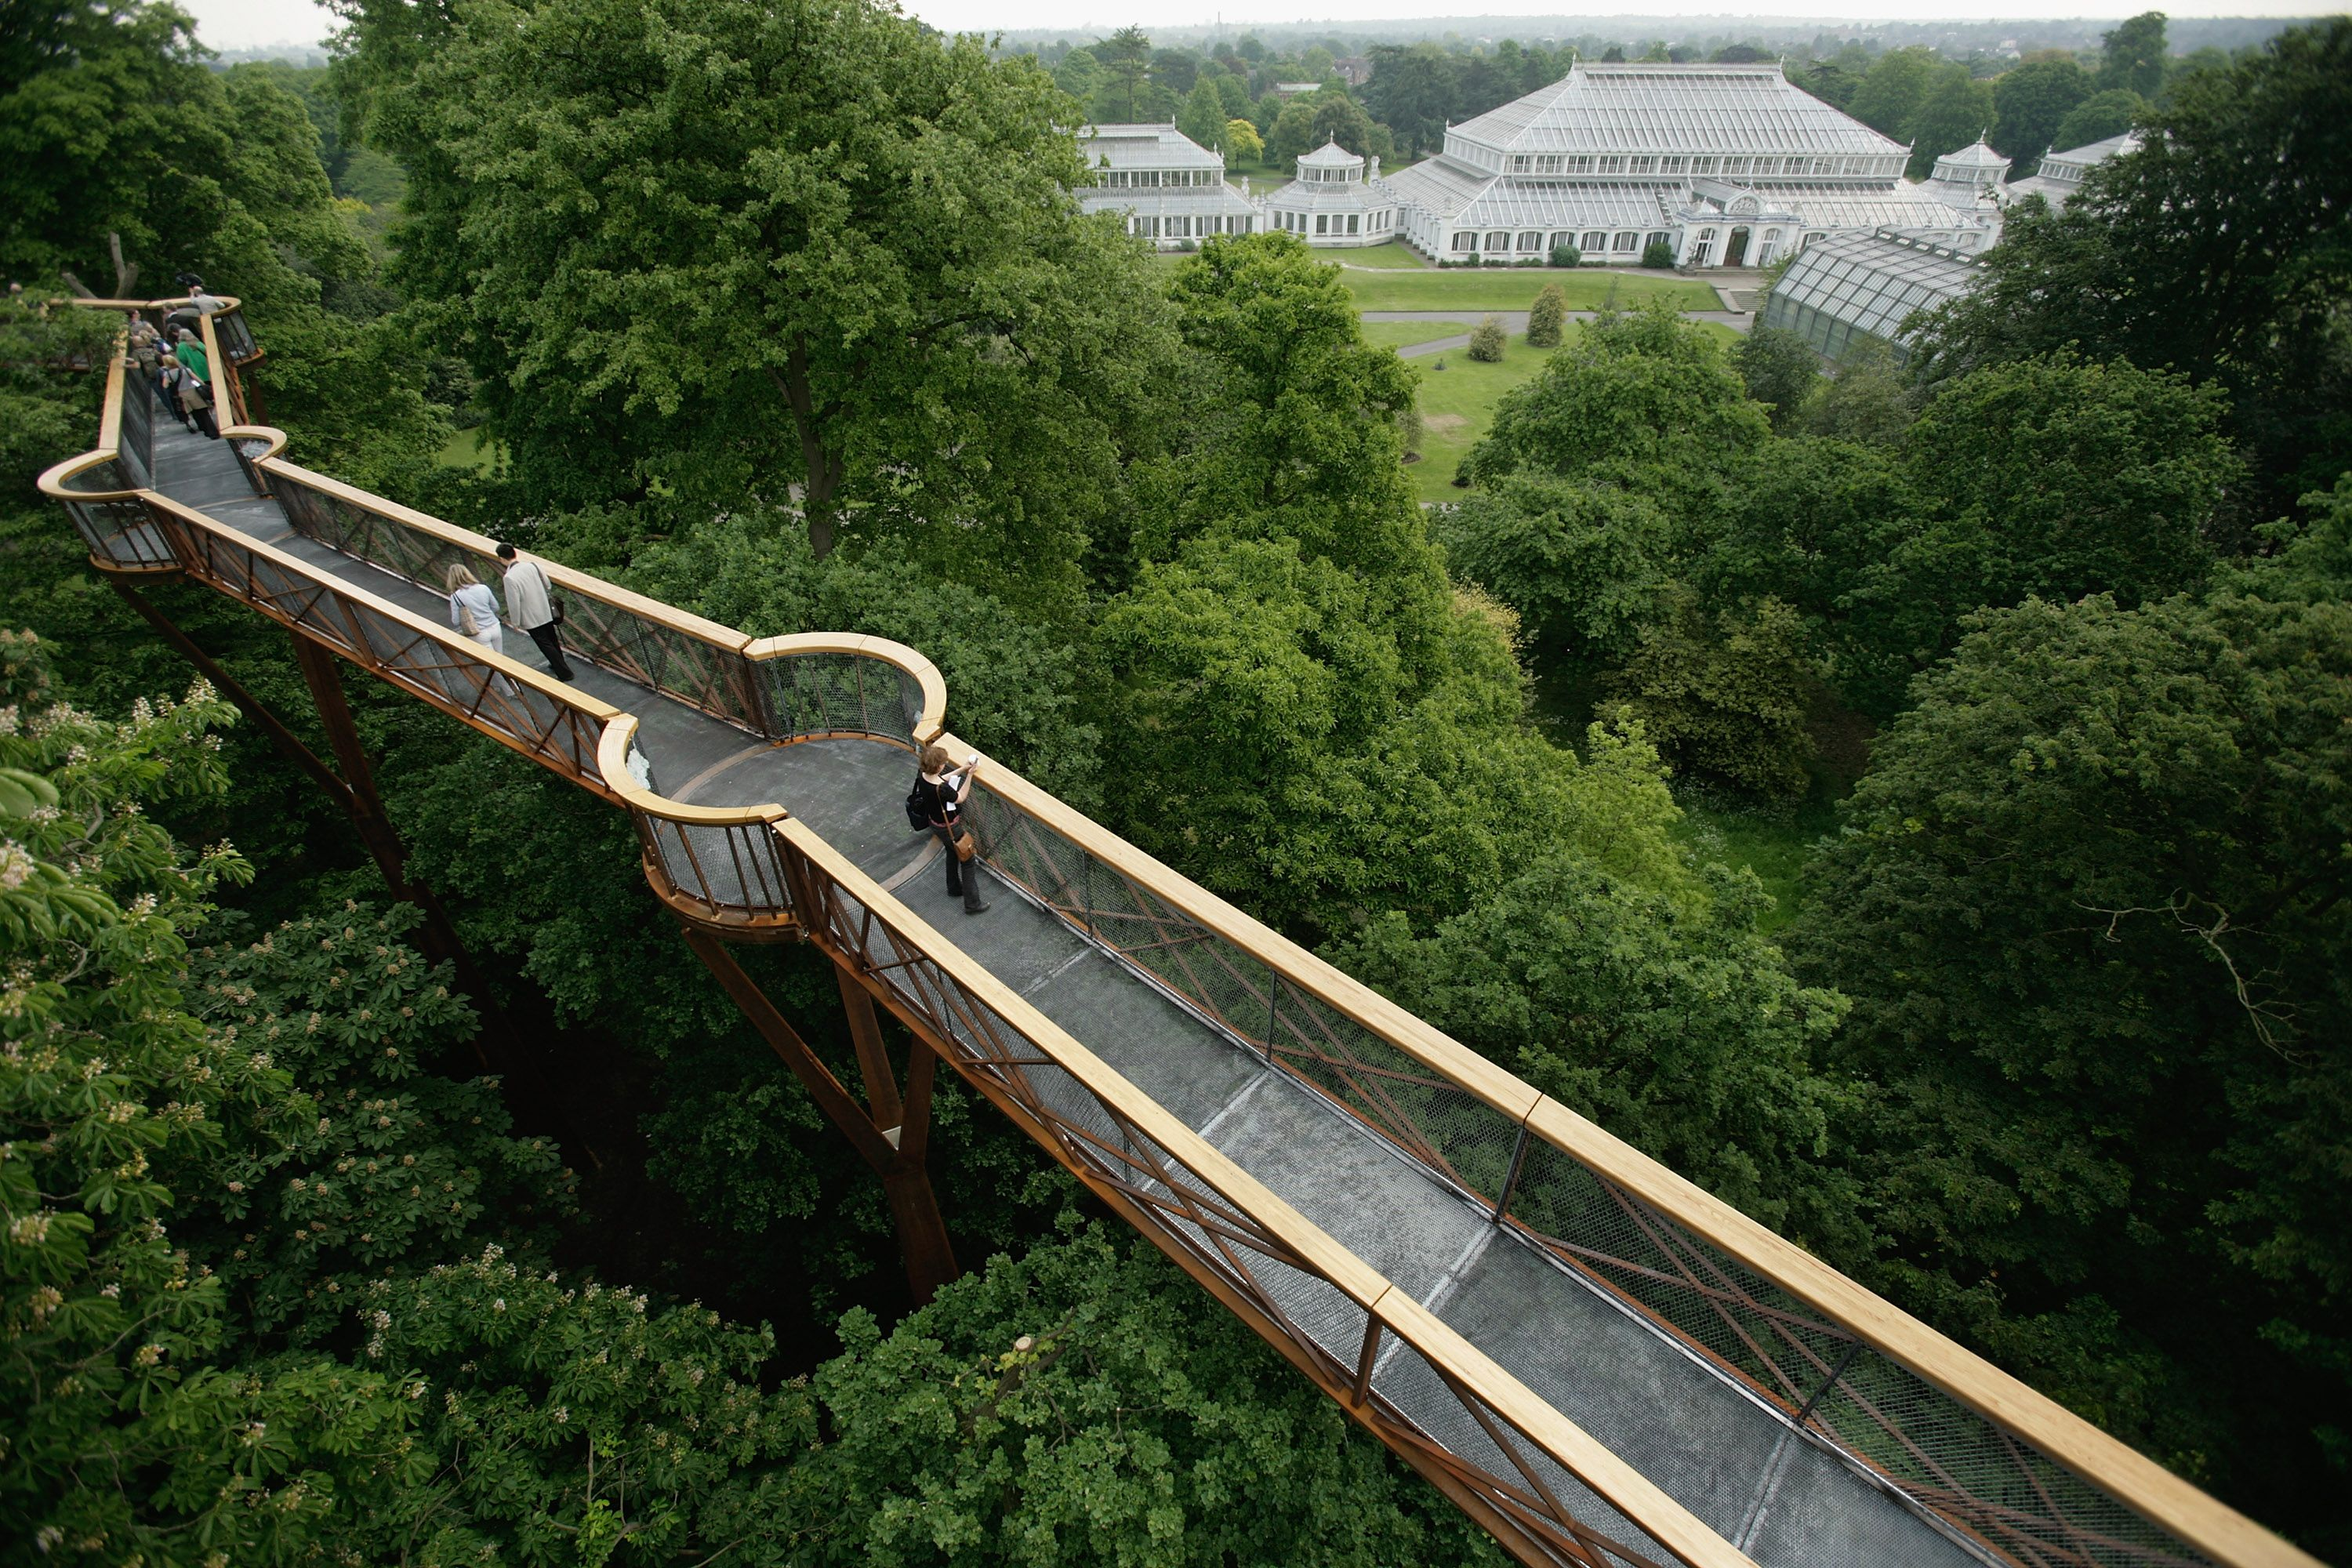 Merveilleux A Treetop Walkway Overlooks The Royal Botanic Gardens, Kew, In Southwest  London. The Institution Contains The Worldu0027s Largest Collection Of Living  Plants.